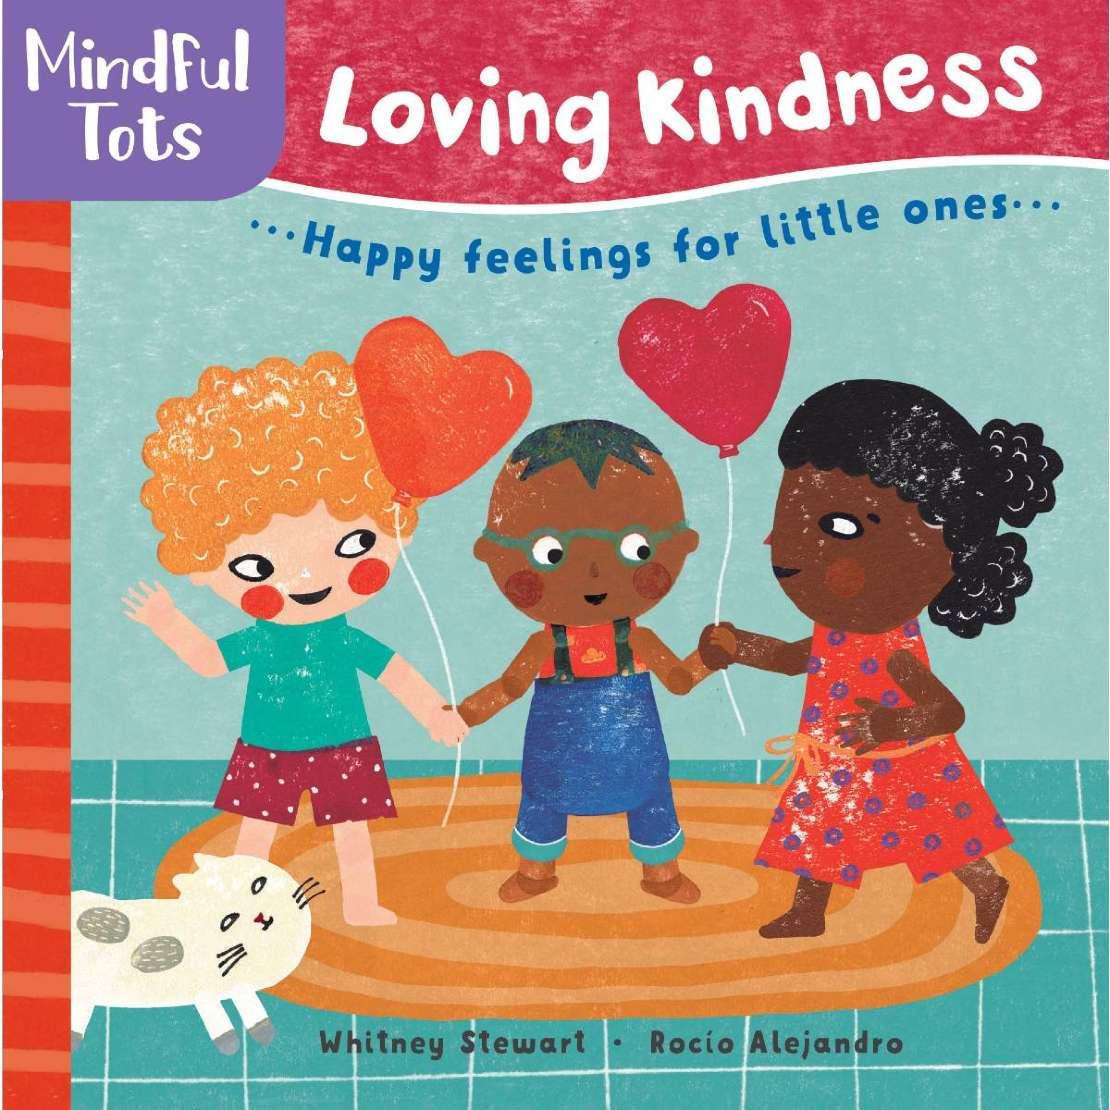 Mindful Tots: Loving Kindness book starts small children on their mindfulness journey from a young age